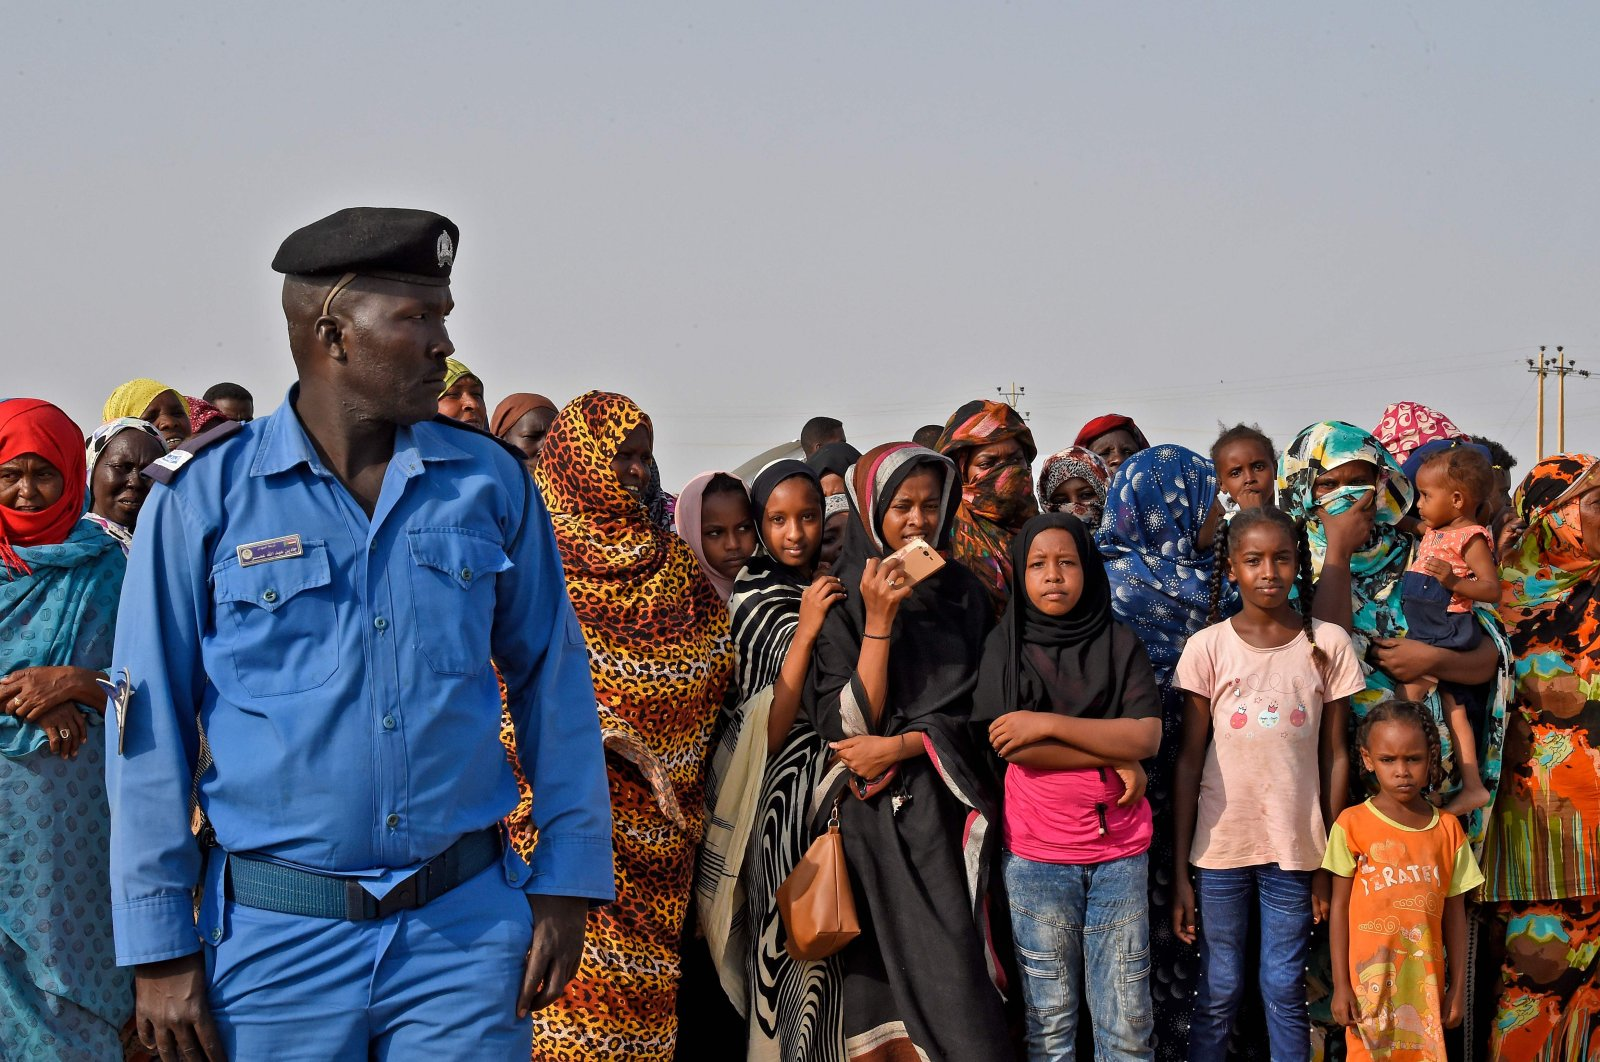 A policeman looks on while standing before displaced people at a shelter camp in the village of Tamaniyet, north of Sudan's capital Khartoum, Sept. 14, 2020. (AFP Photo)